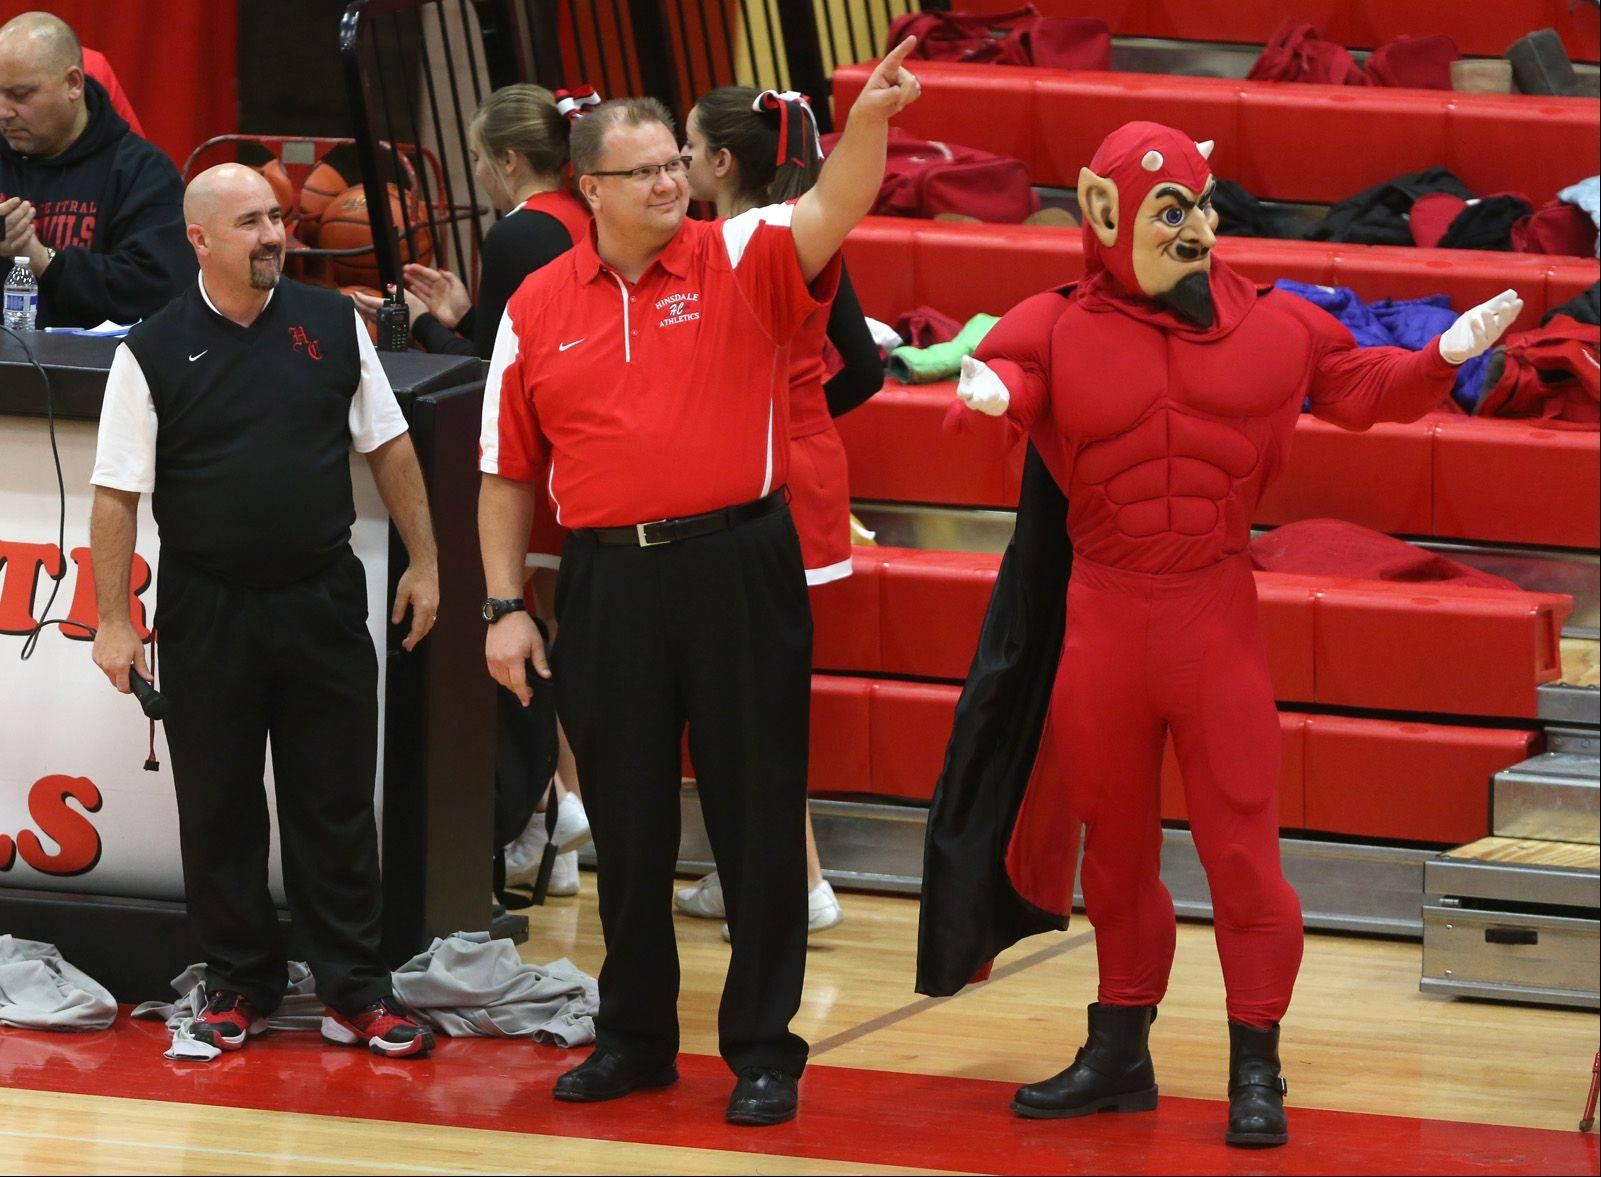 Hinsdale Central hosted Metea Valley Friday, Feb. 7 for boys basketball.